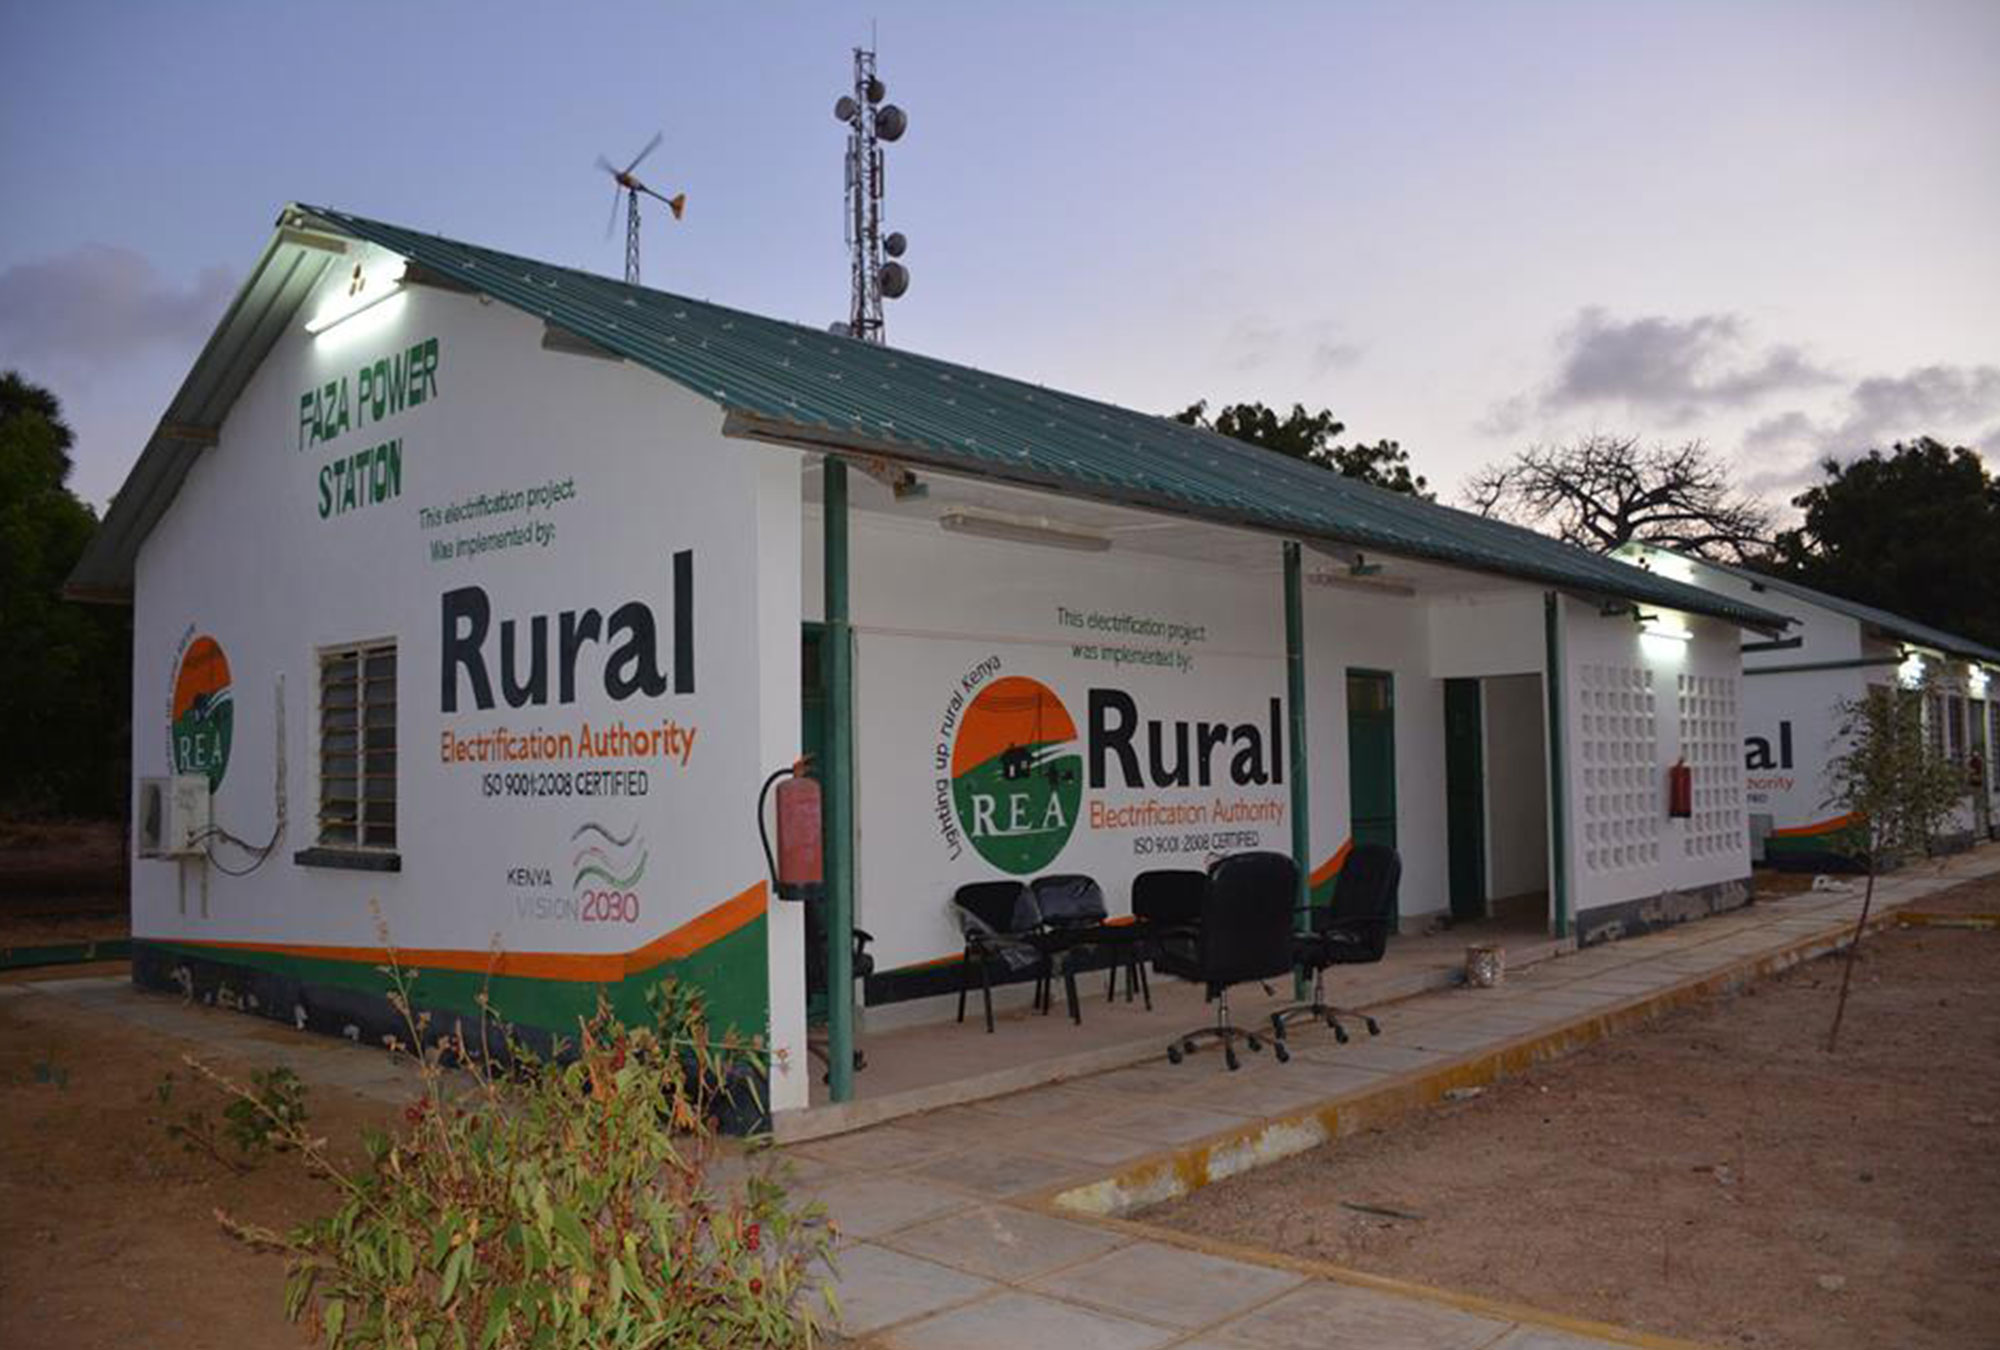 White building with Rural Electrification Authority logo painted